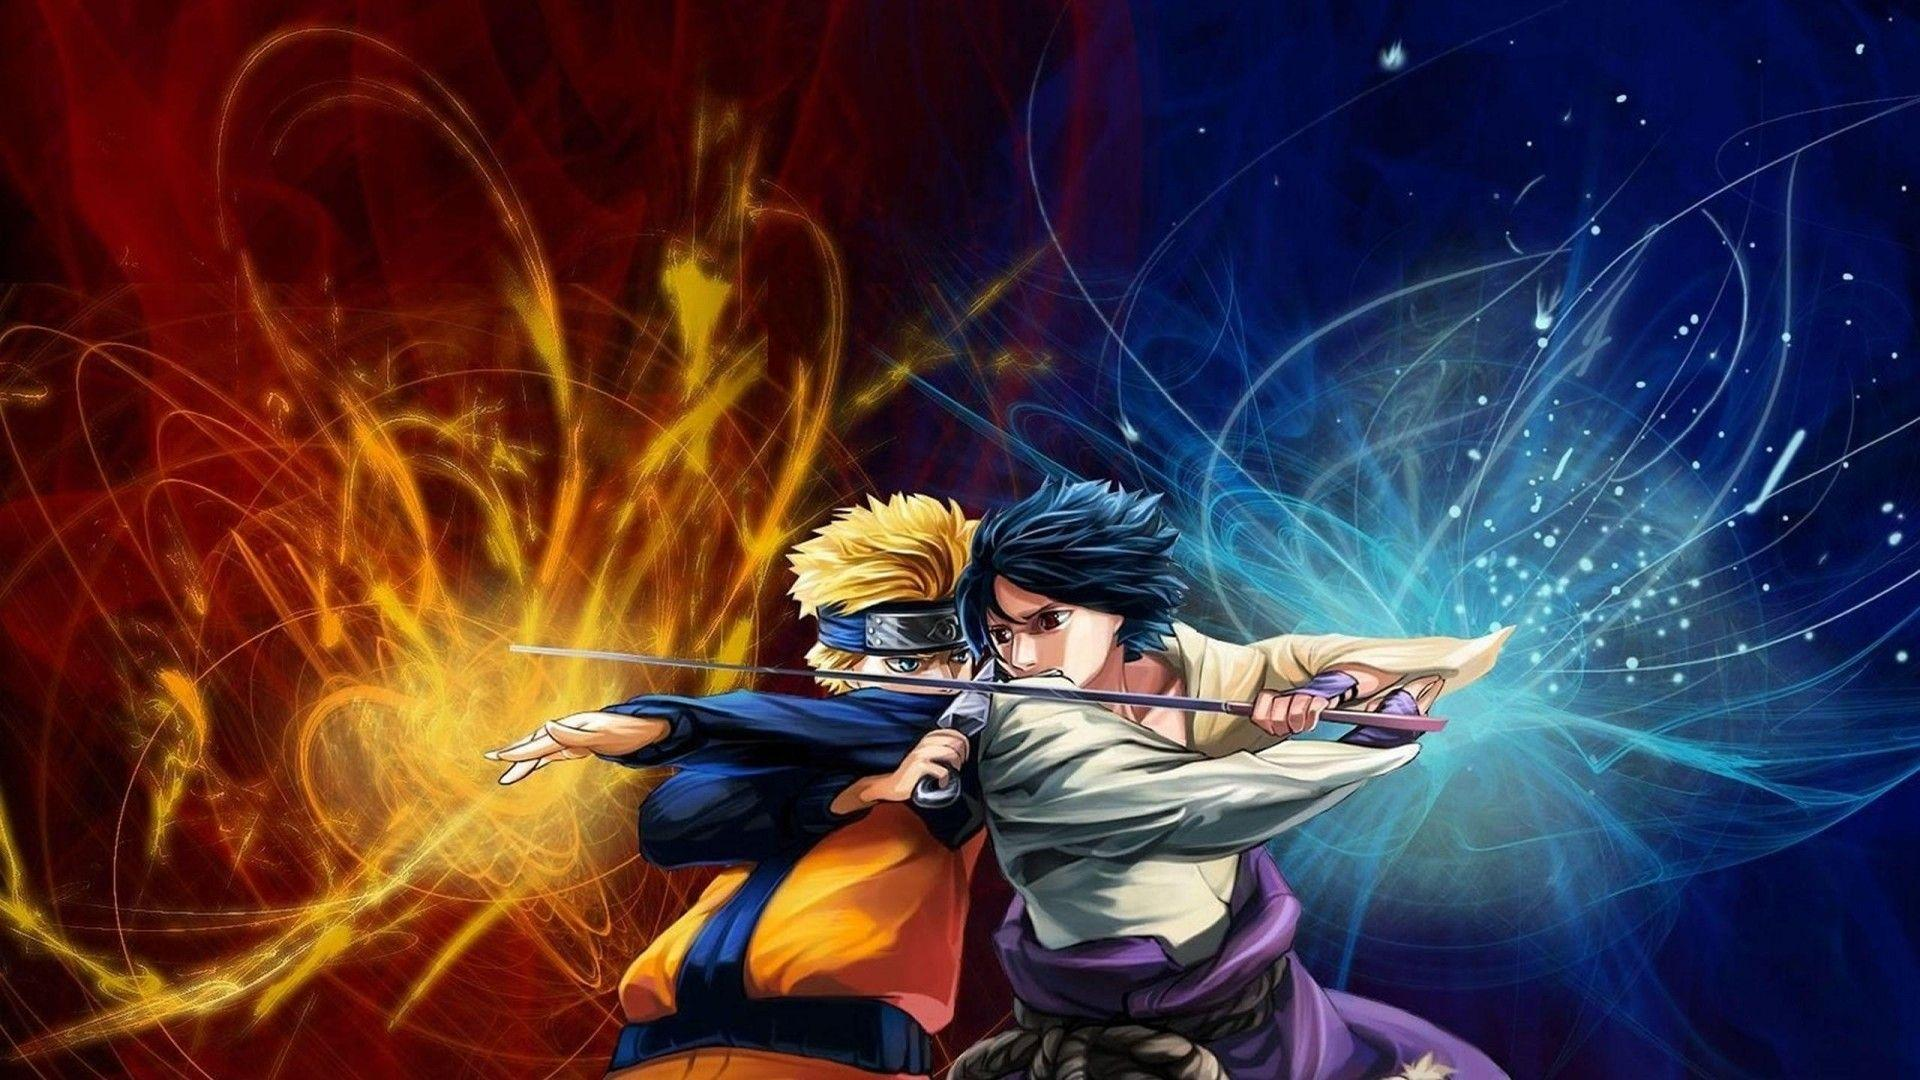 Naruto Shippuden Terbaru Wallpapers, Pictures, Image